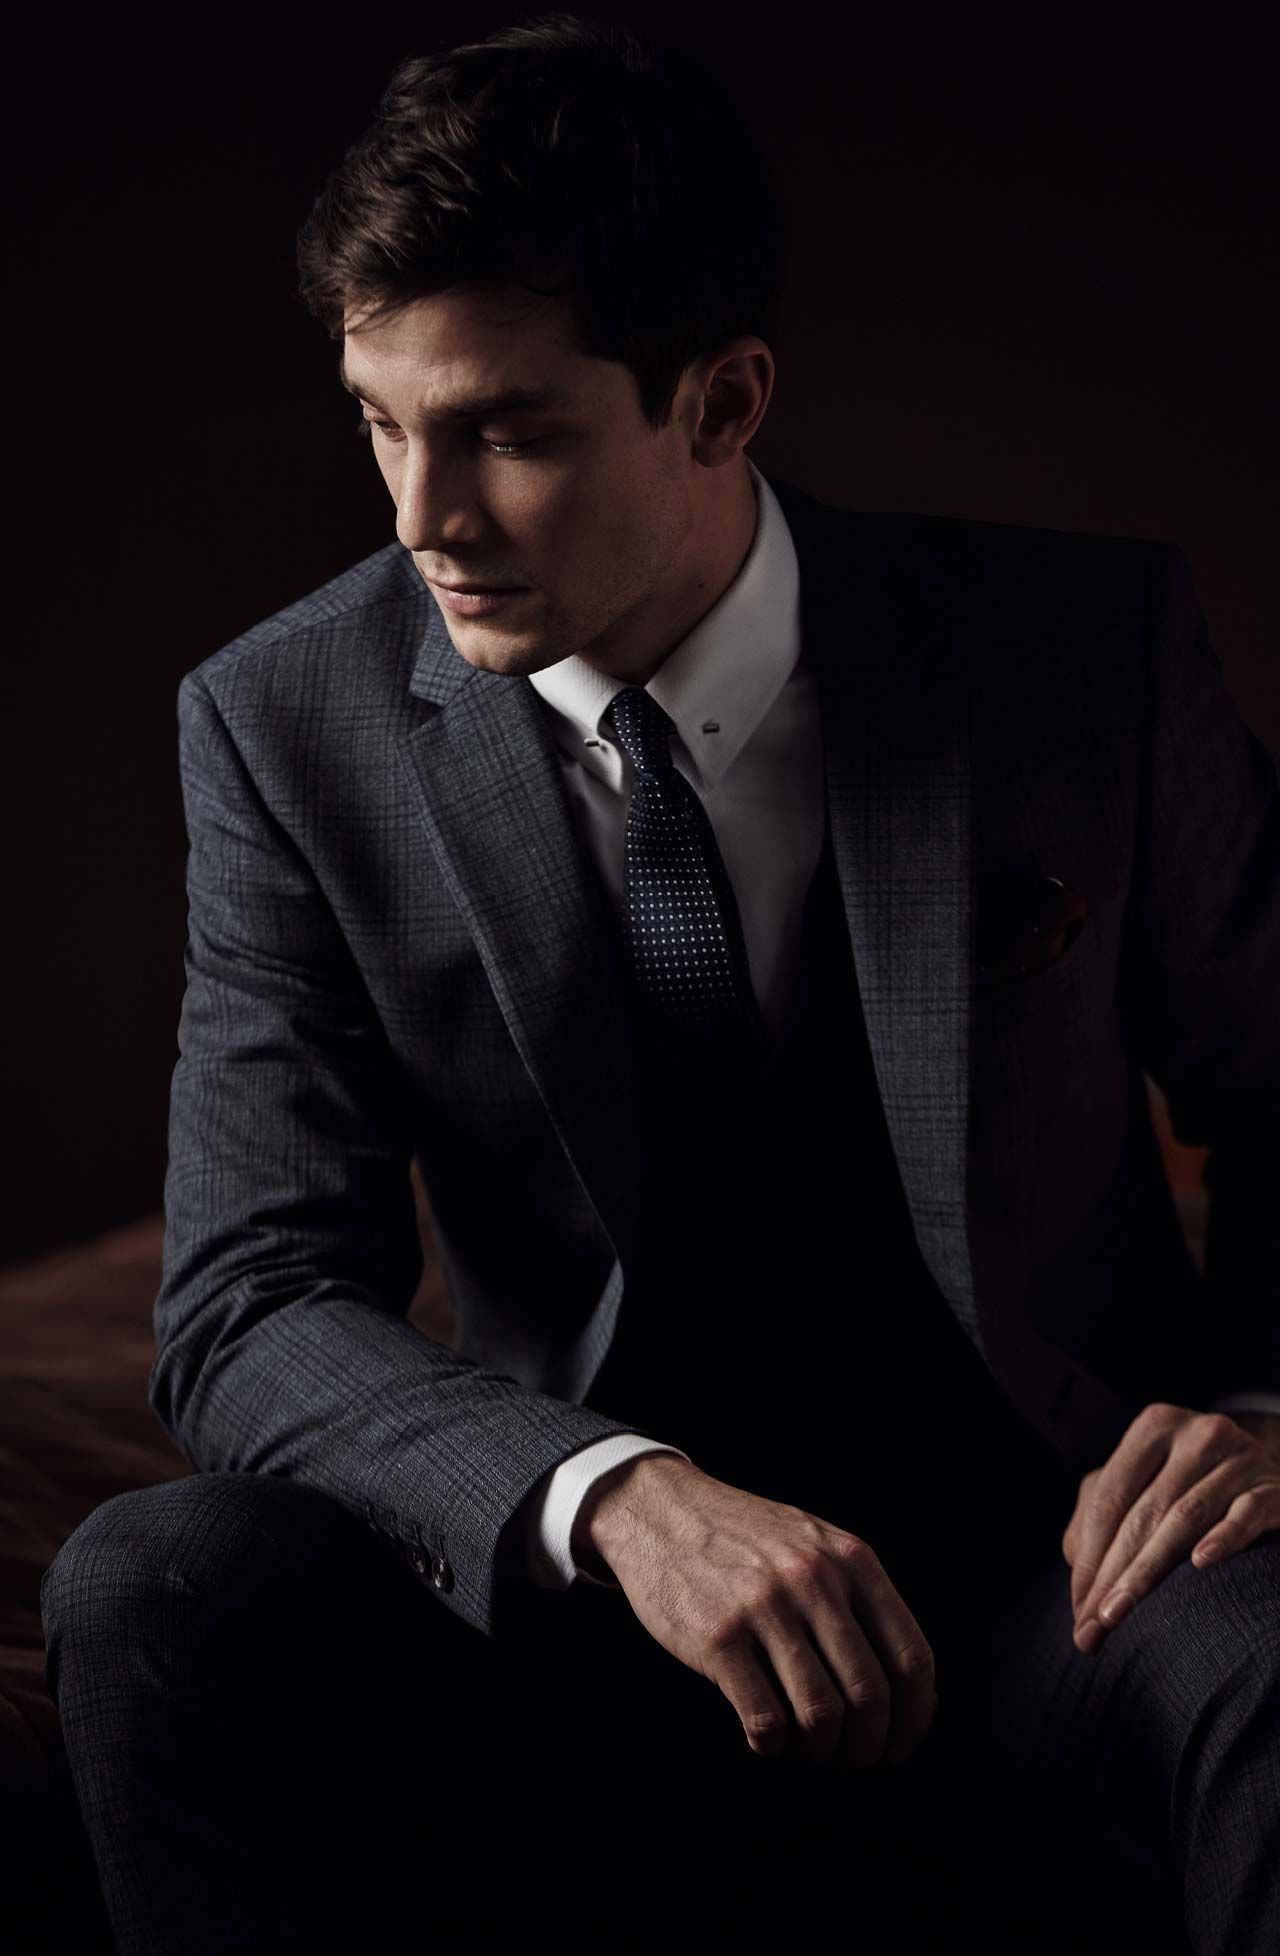 The Suit Spectrum Reiss Editorial Best Poses For Men Photography Poses For Men Suits Men Business